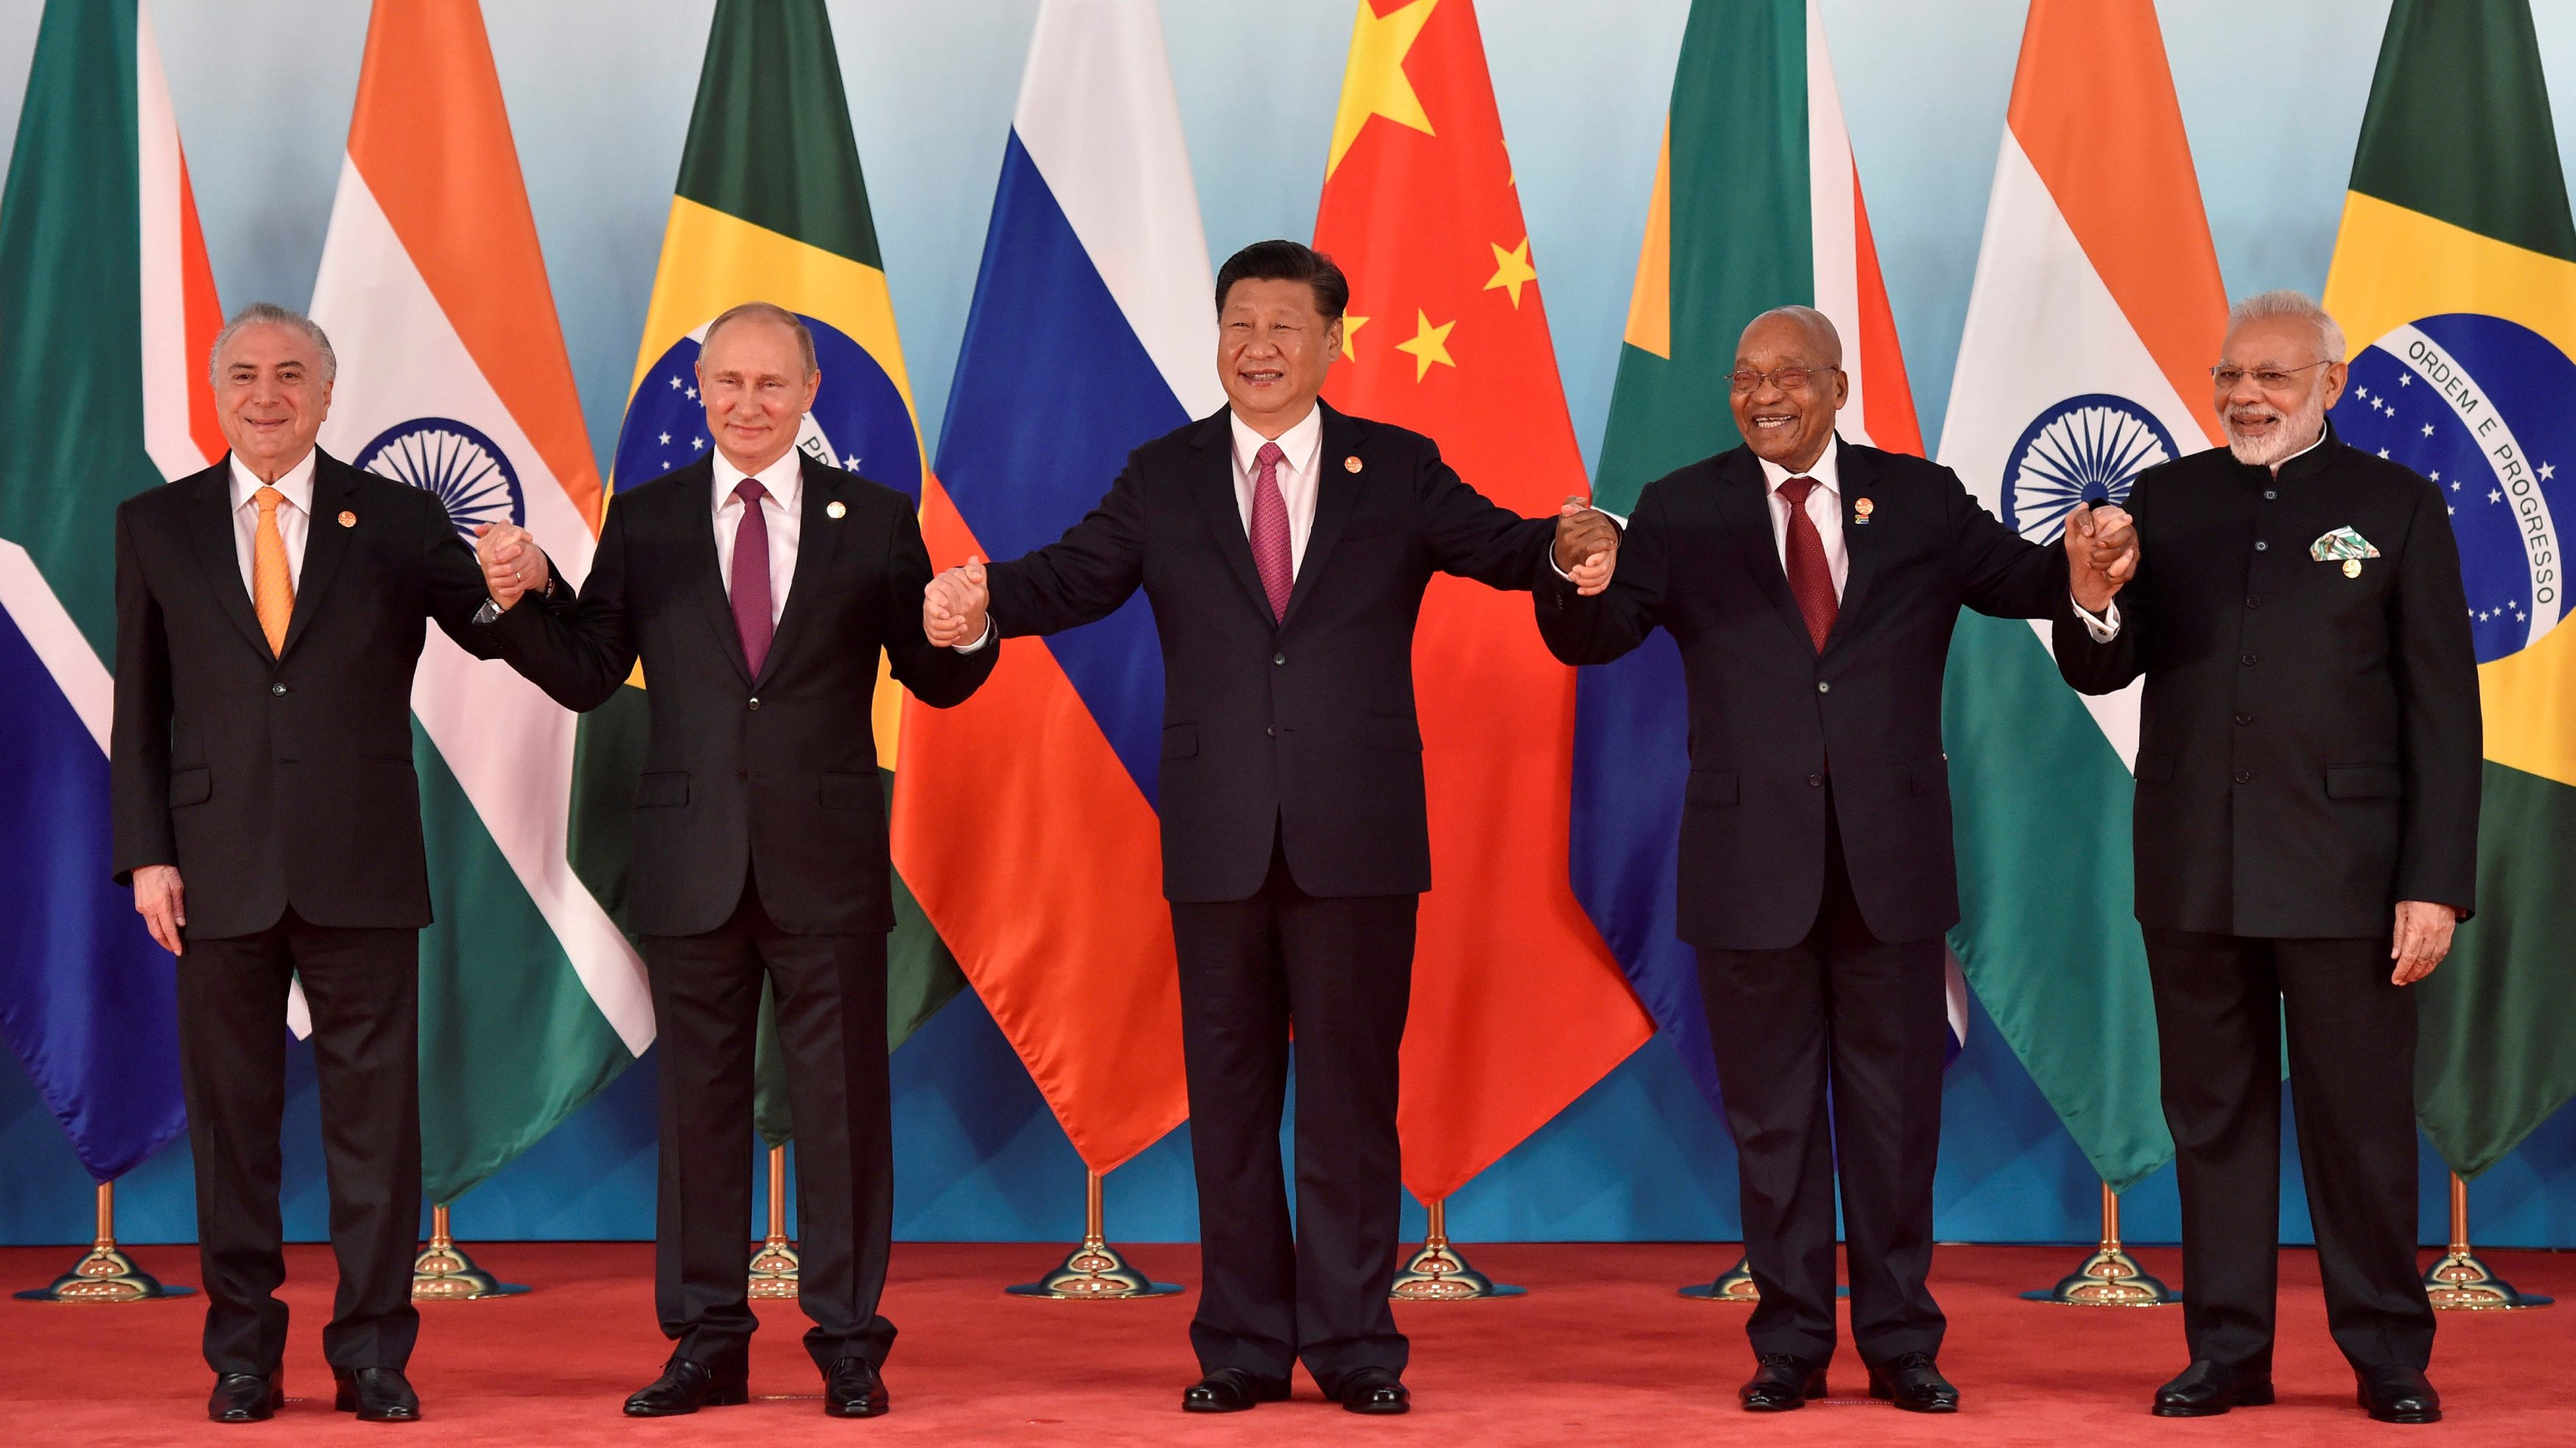 (L-R) Brazil's President Michel Temer, Russian President Vladimir Putin, Chinese President Xi Jinping, South Africa's President Jacob Zuma and Indian Prime Minister Narendra Modi pose for a group photo during the BRICS Summit at the Xiamen International Conference and Exhibition Center in Xiamen, southeastern China's Fujian Province, China September 4, 2017.